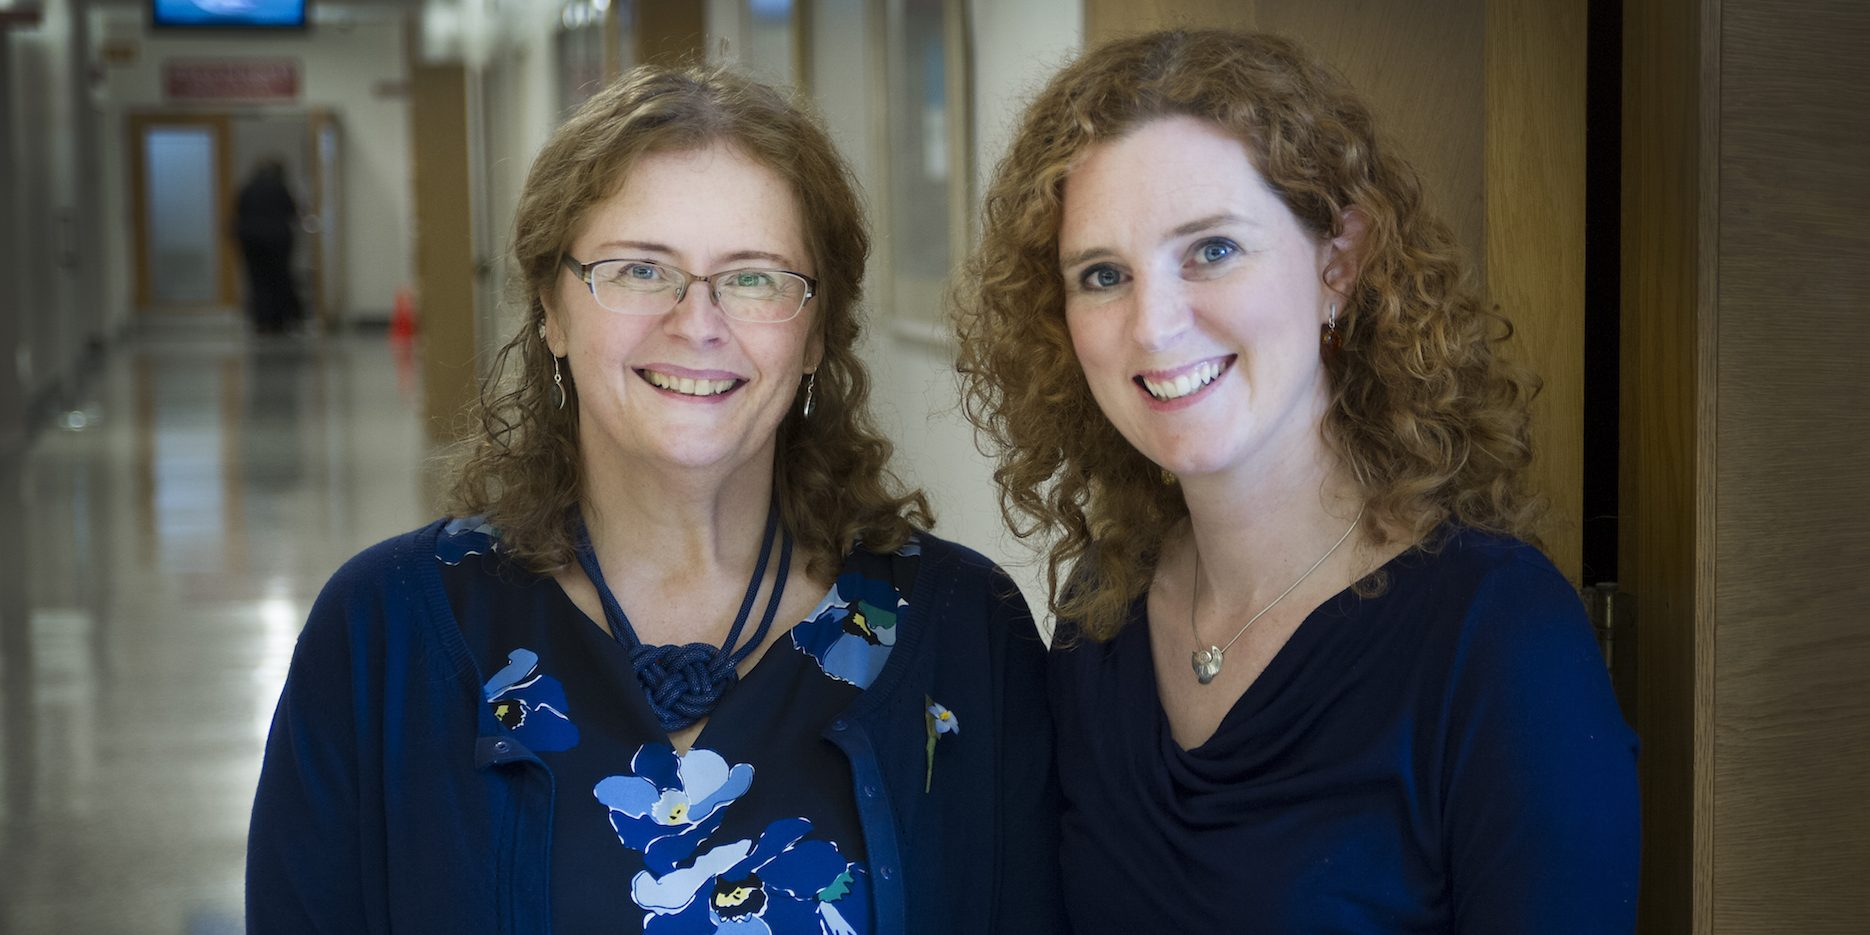 From left, research partners Terry Bishop Stirling and Heidi Coombs-Thorne.